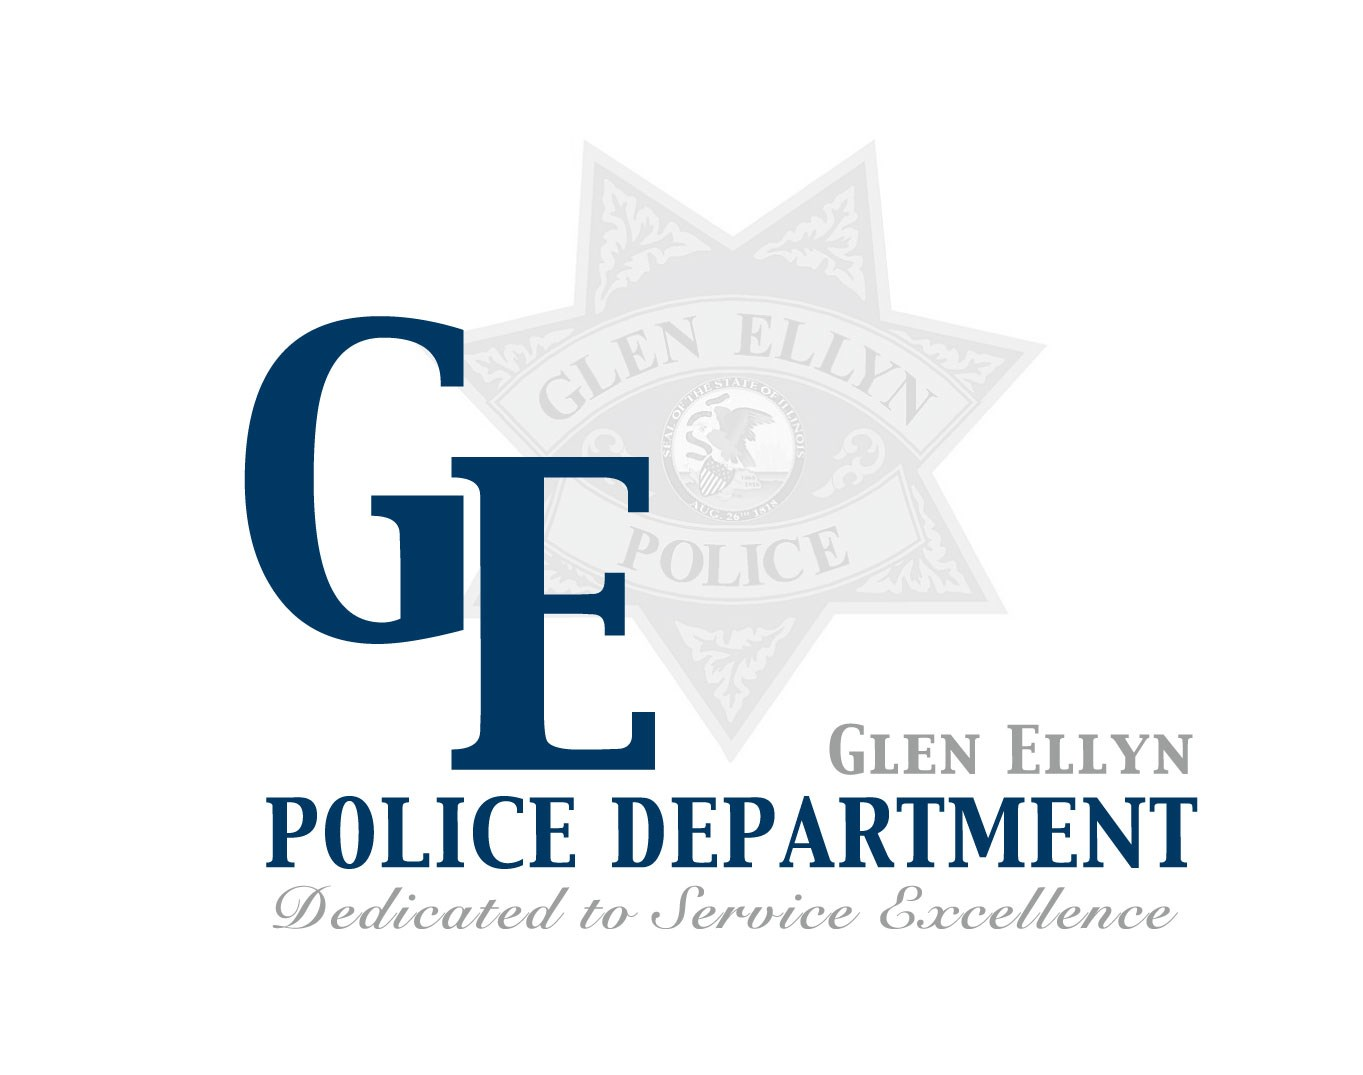 Glen Ellyn Police Department Contact: Christine Miller